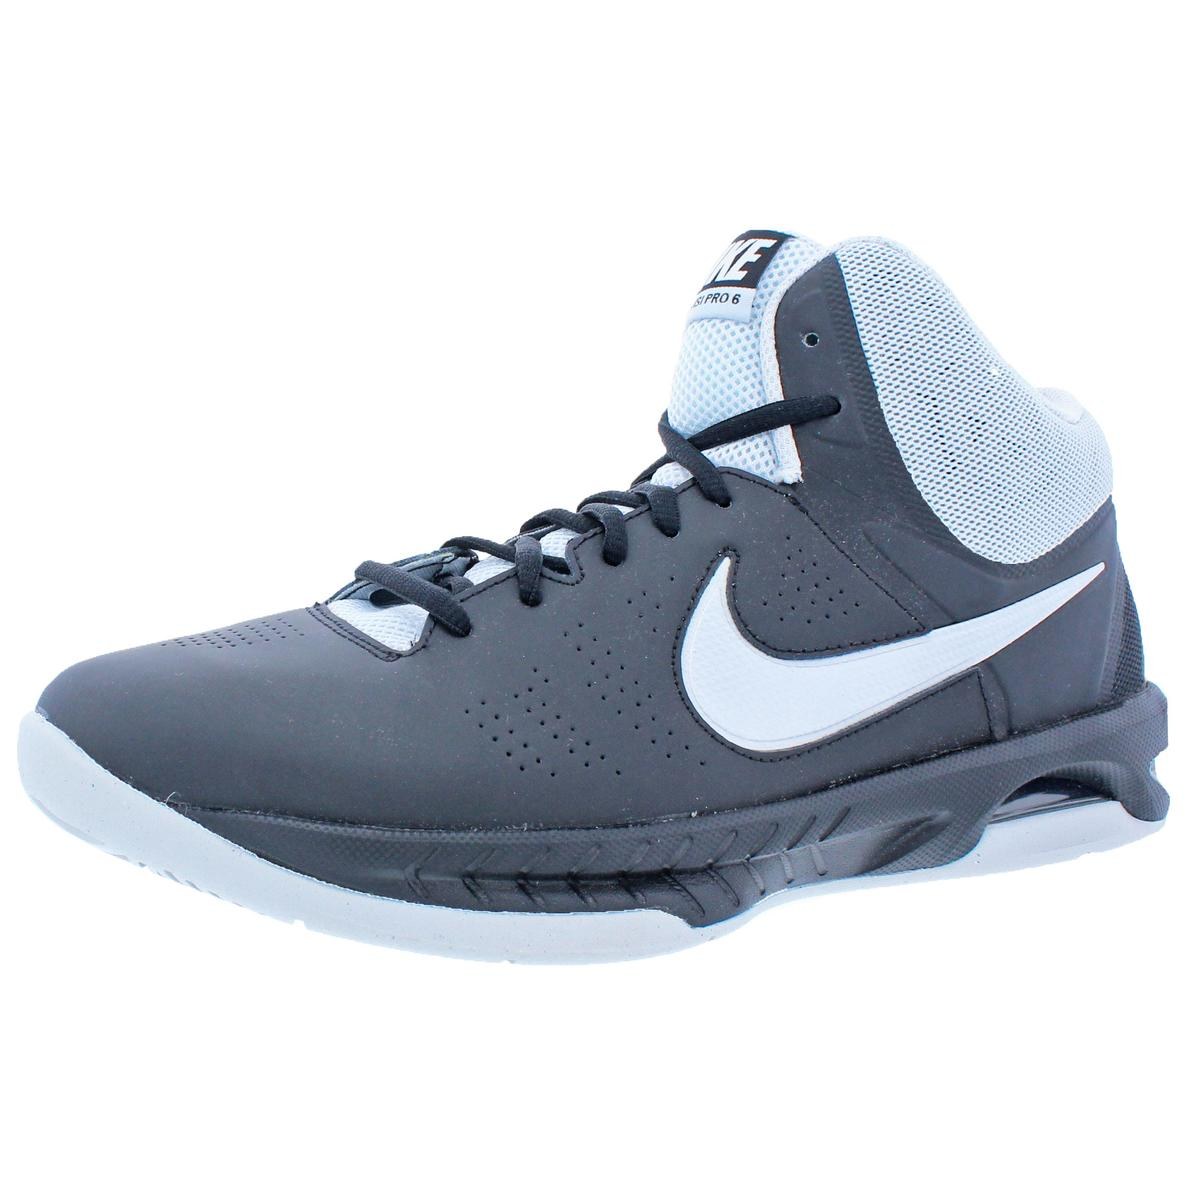 ce7d0f3c9835 Details about Nike Womens Air Visi Pro VI Black Basketball Shoes 11.5 Medium  (B